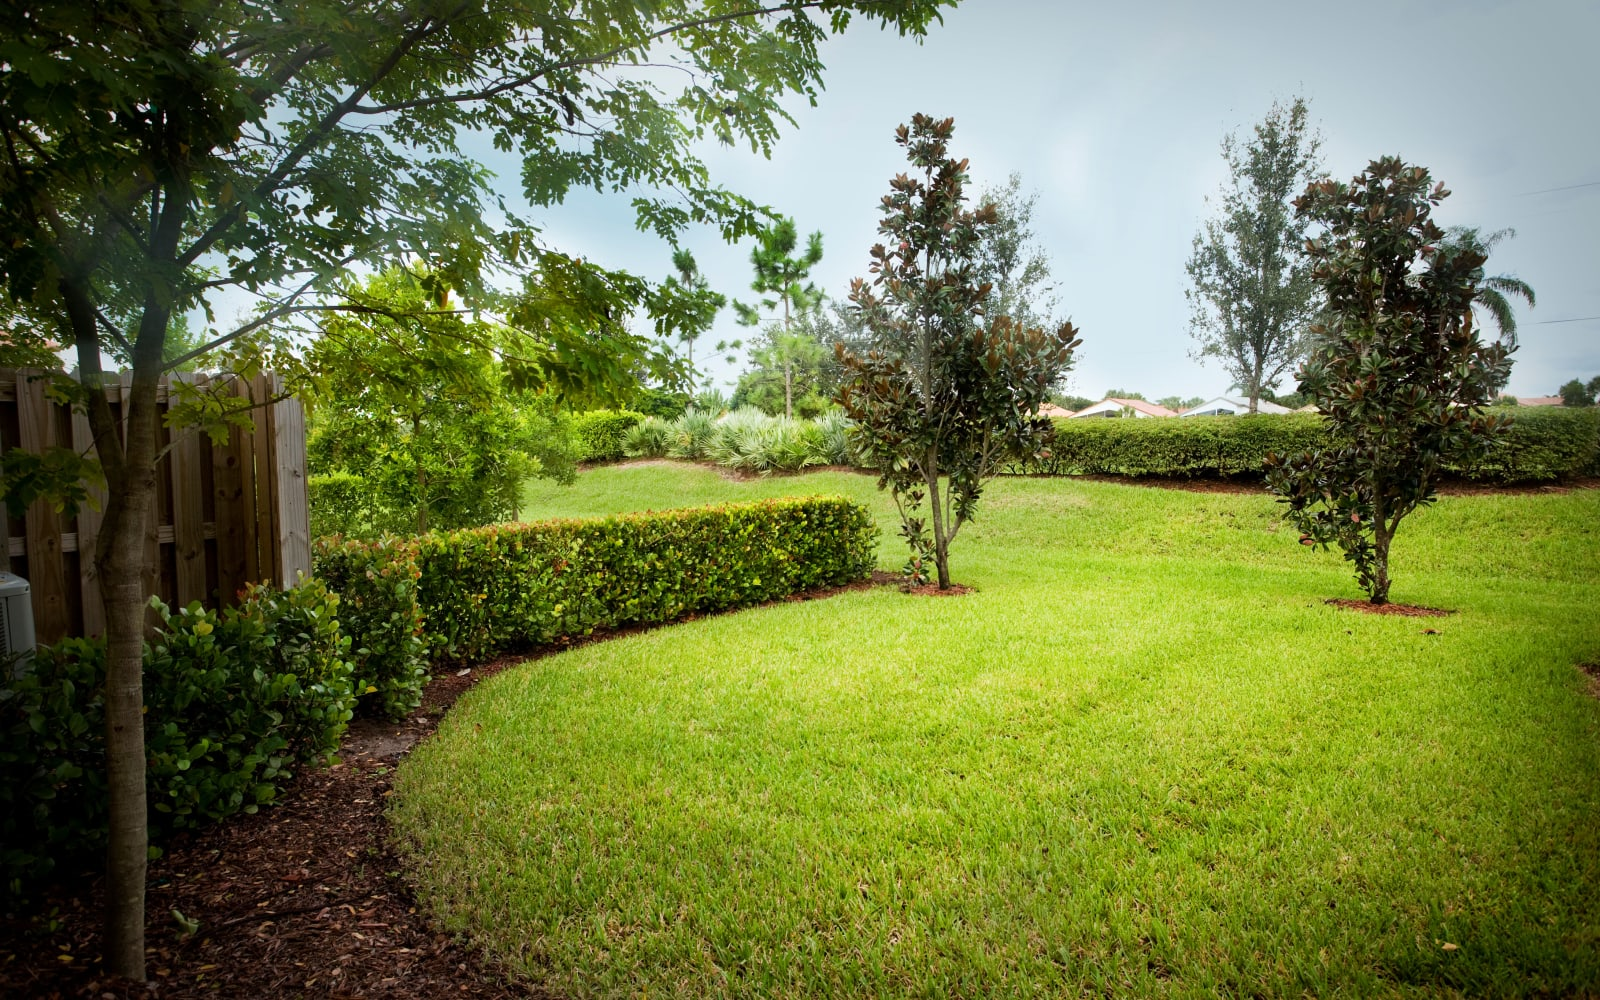 Beautiful landscaping at Green Cay Village in Boynton Beach, Florida